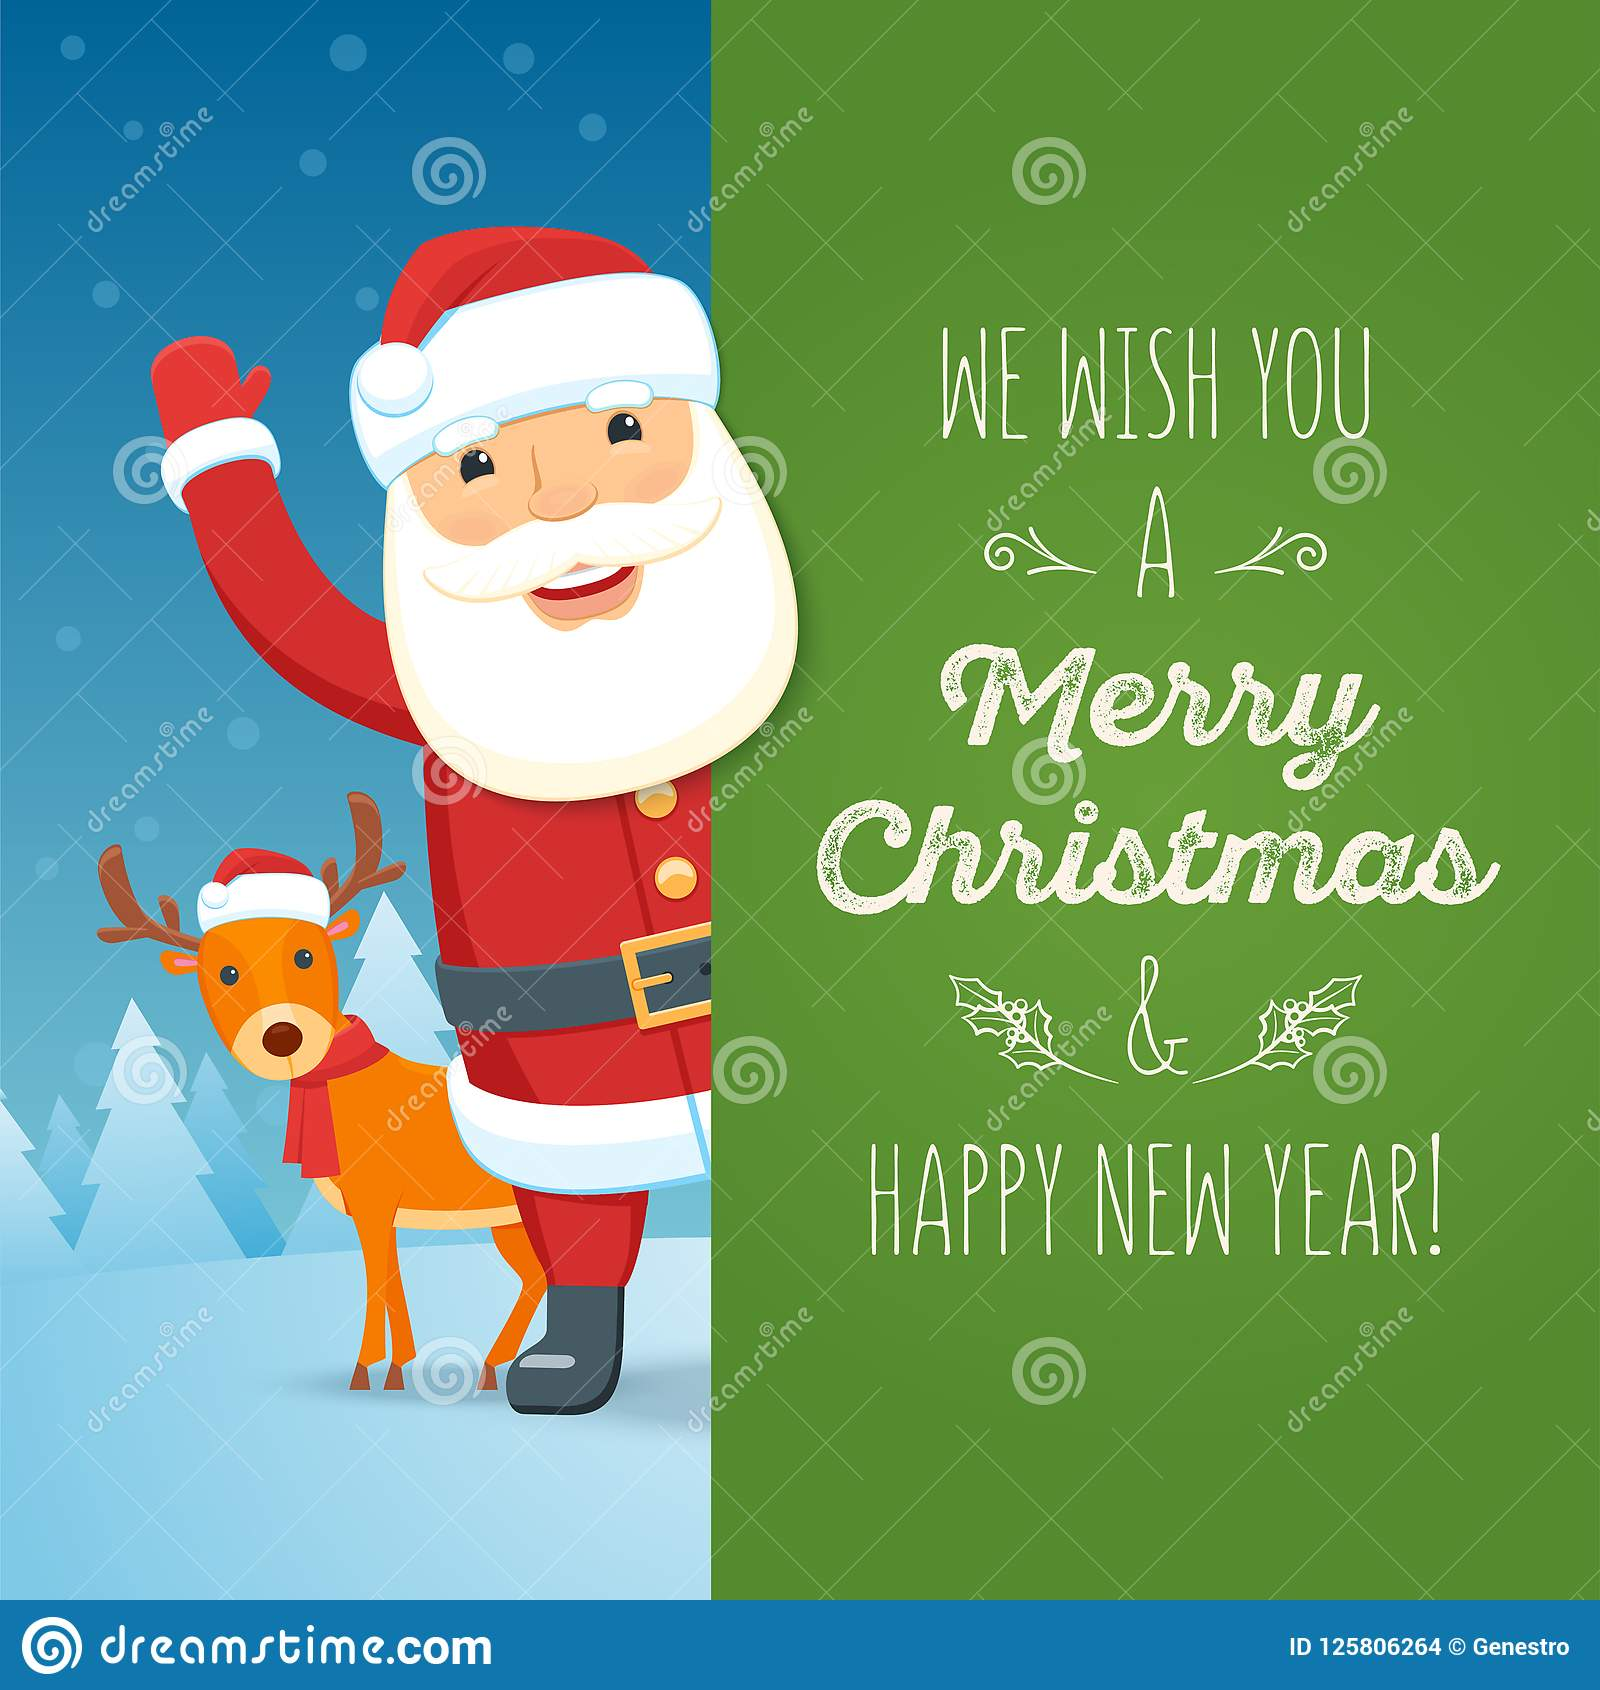 Weihnachtsbilder Merry Christmas.Santa Claus And Reindeer With Signboard Stock Vector Illustration